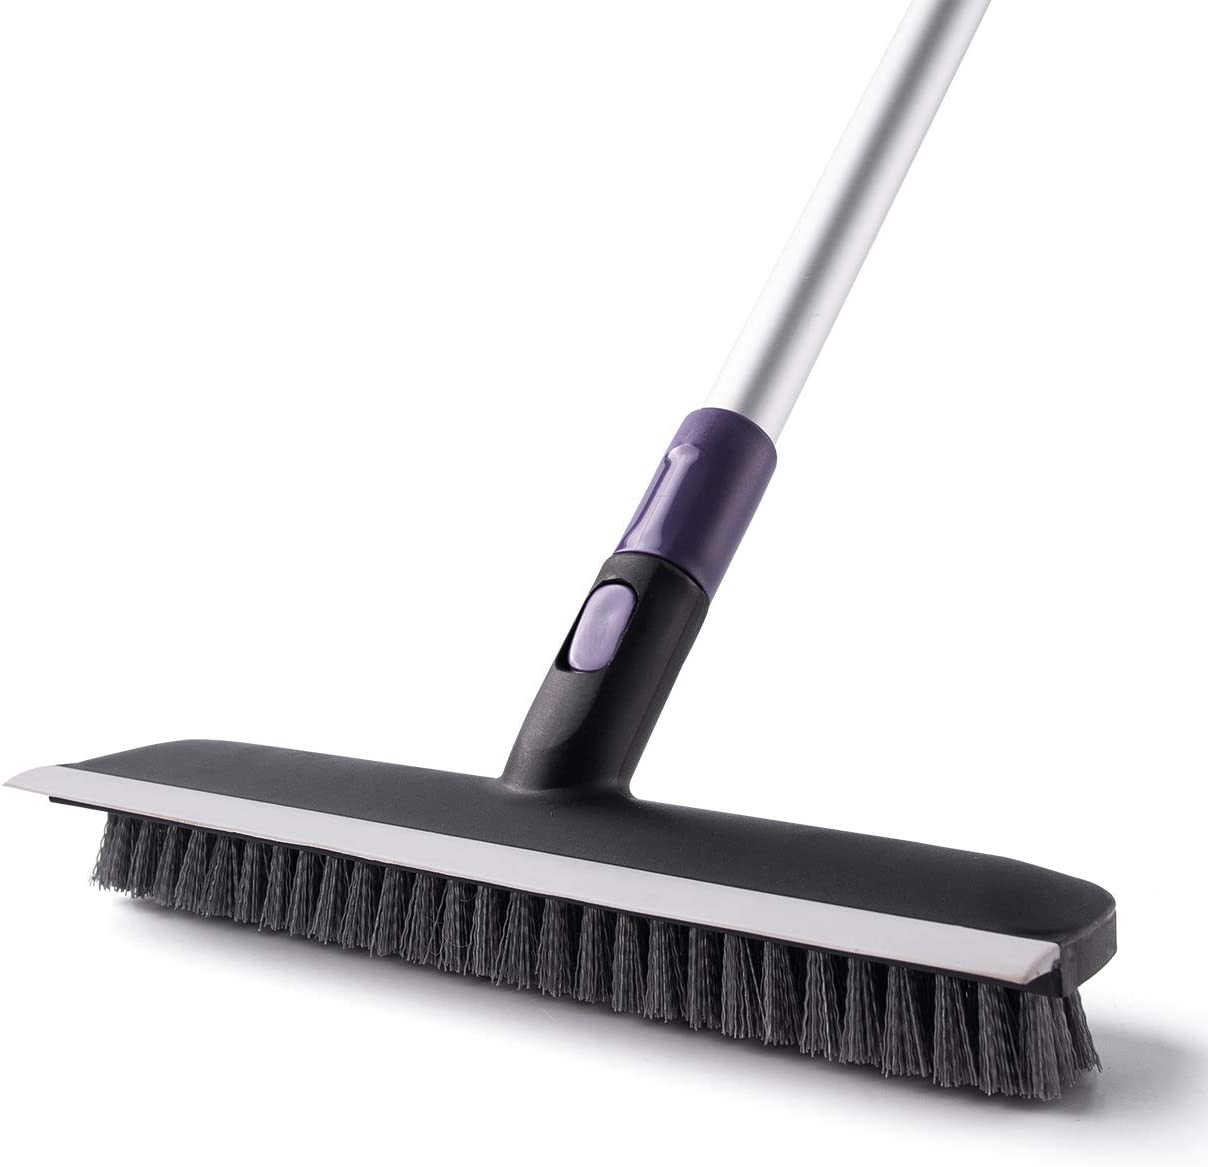 AKOMA Push Broom with Water and Remove Squeegee Ranking TOP7 Max 69% OFF Extendable Long